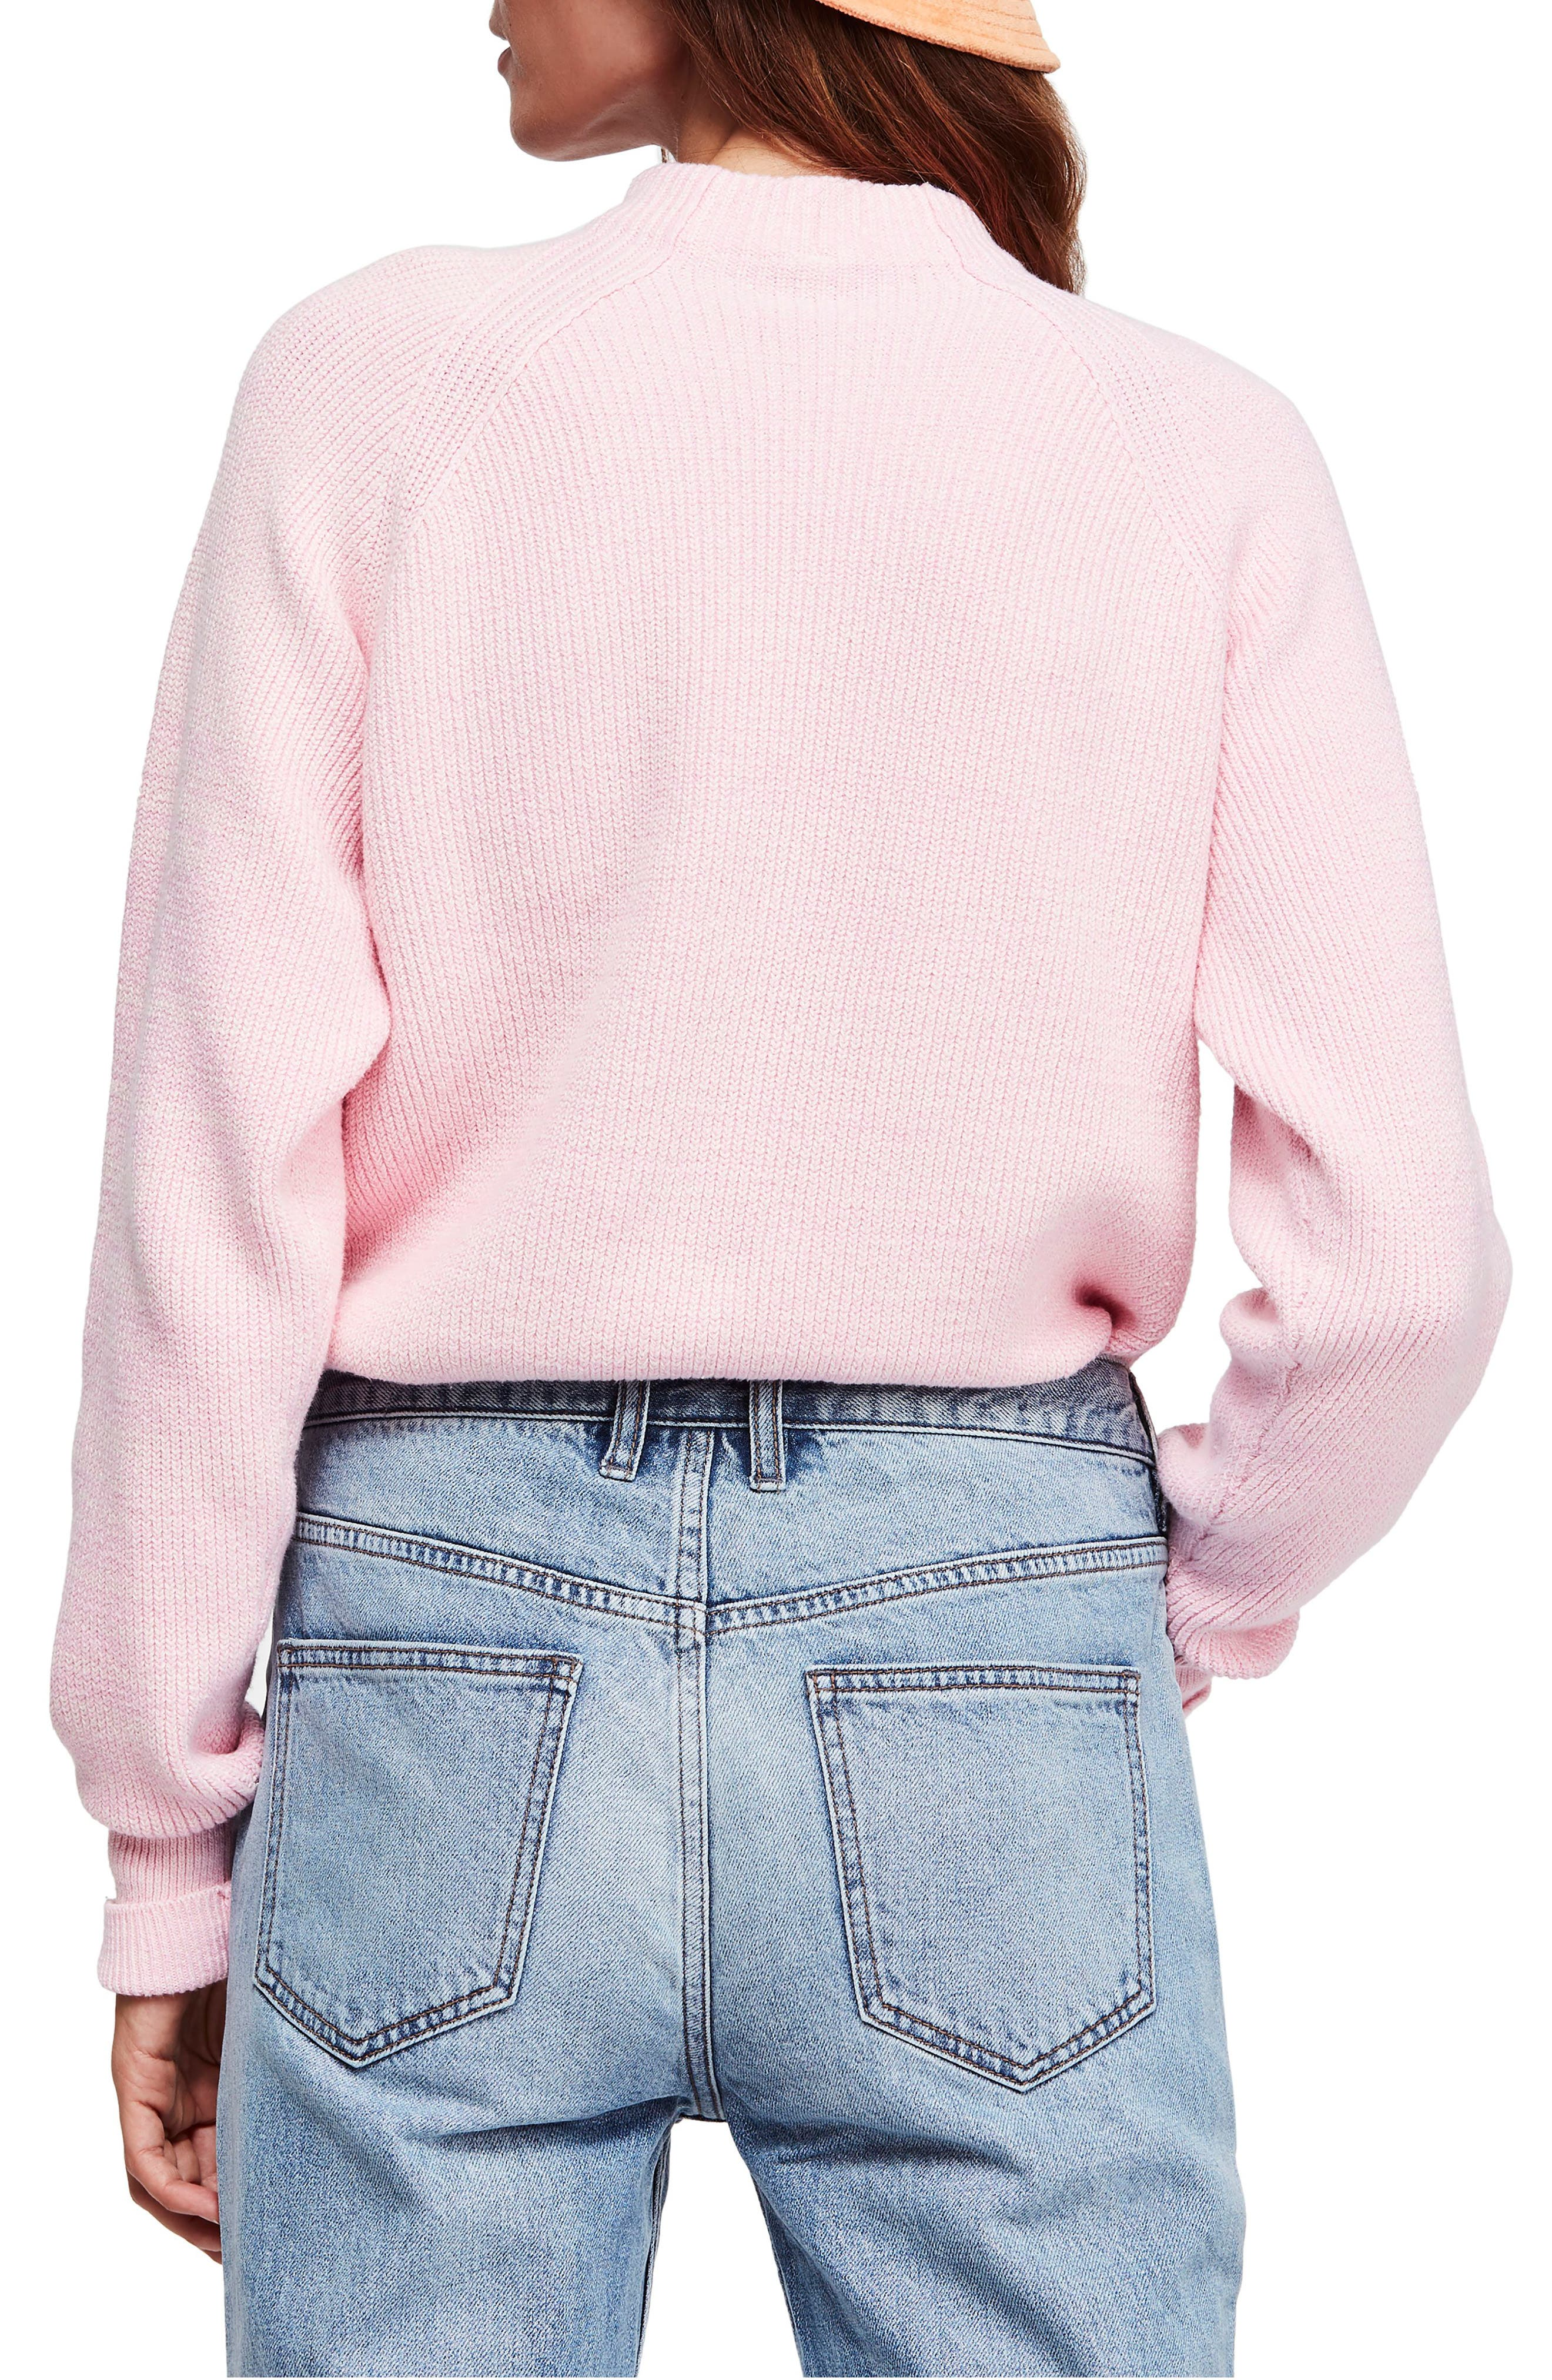 Too Good Sweater,                             Alternate thumbnail 2, color,                             PINK